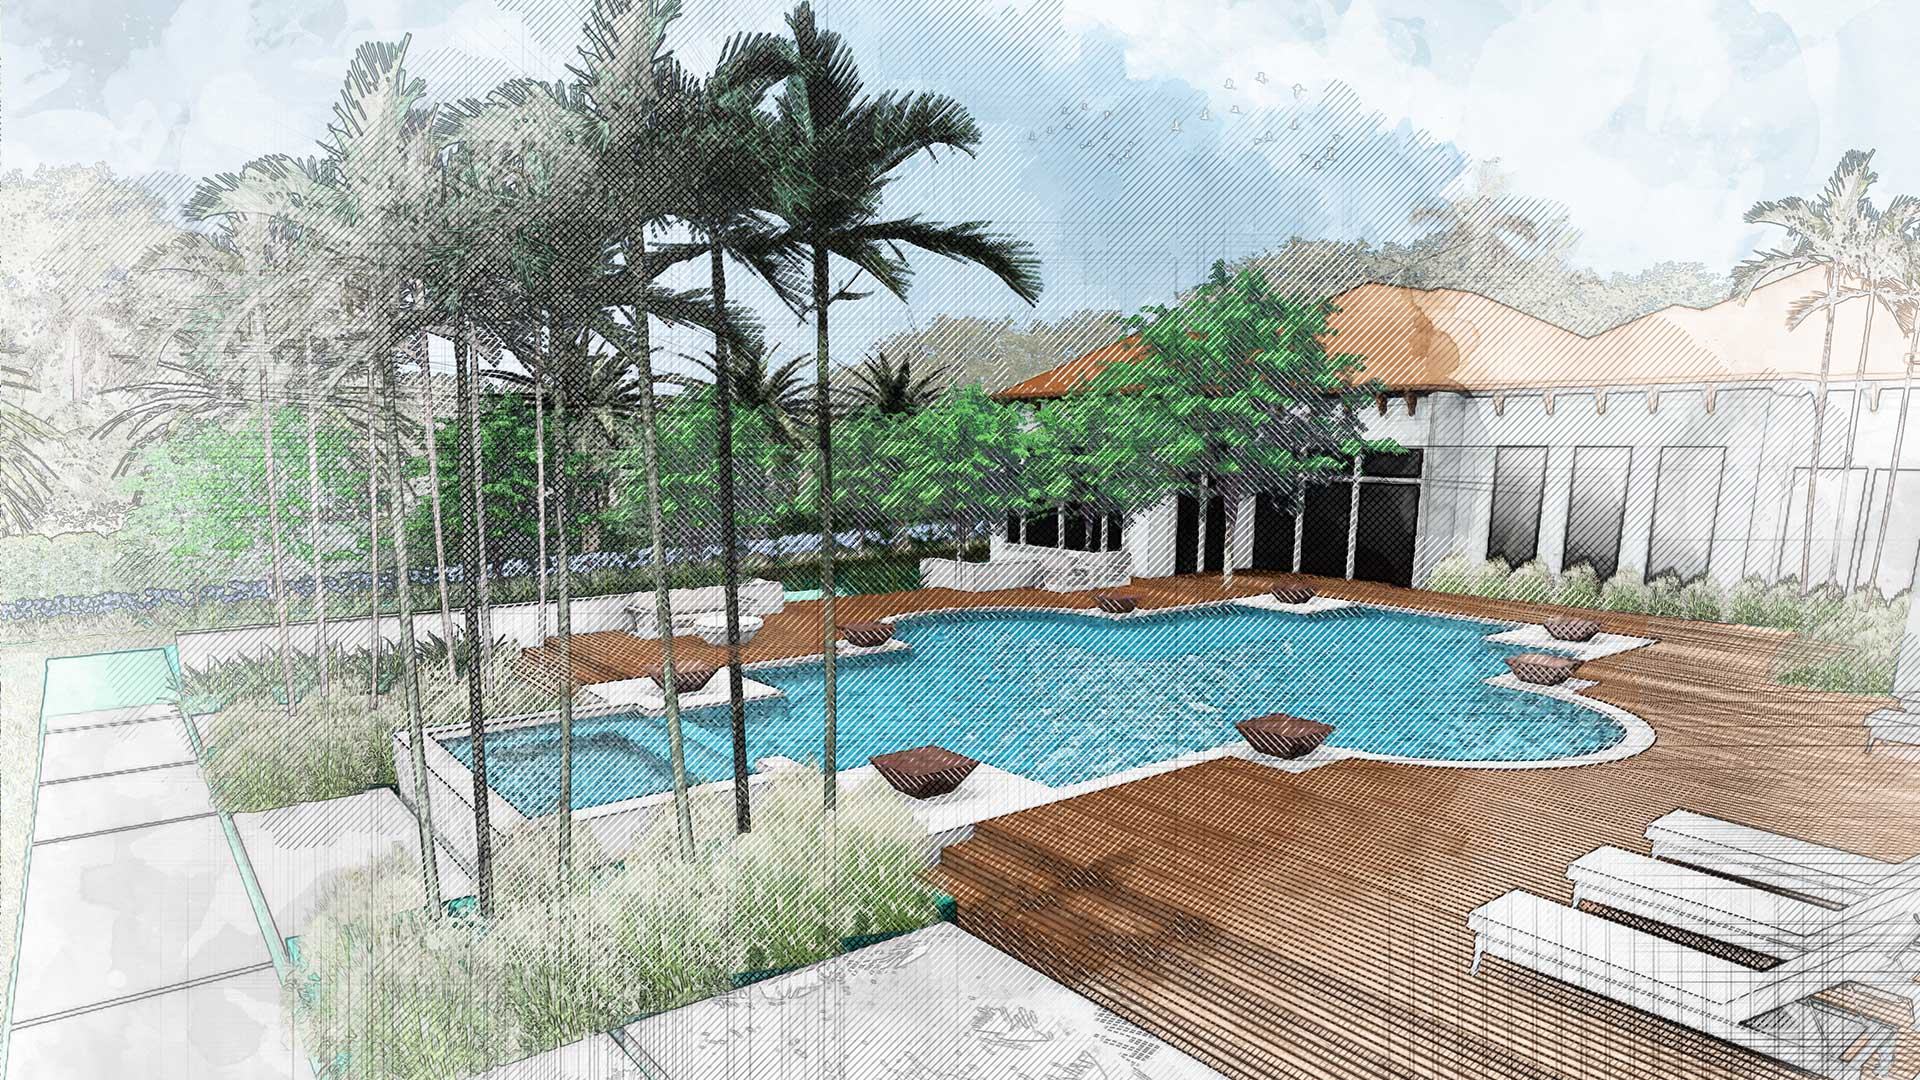 sketching of landscape design showing the backyard pool with loungechairs, plants and trees